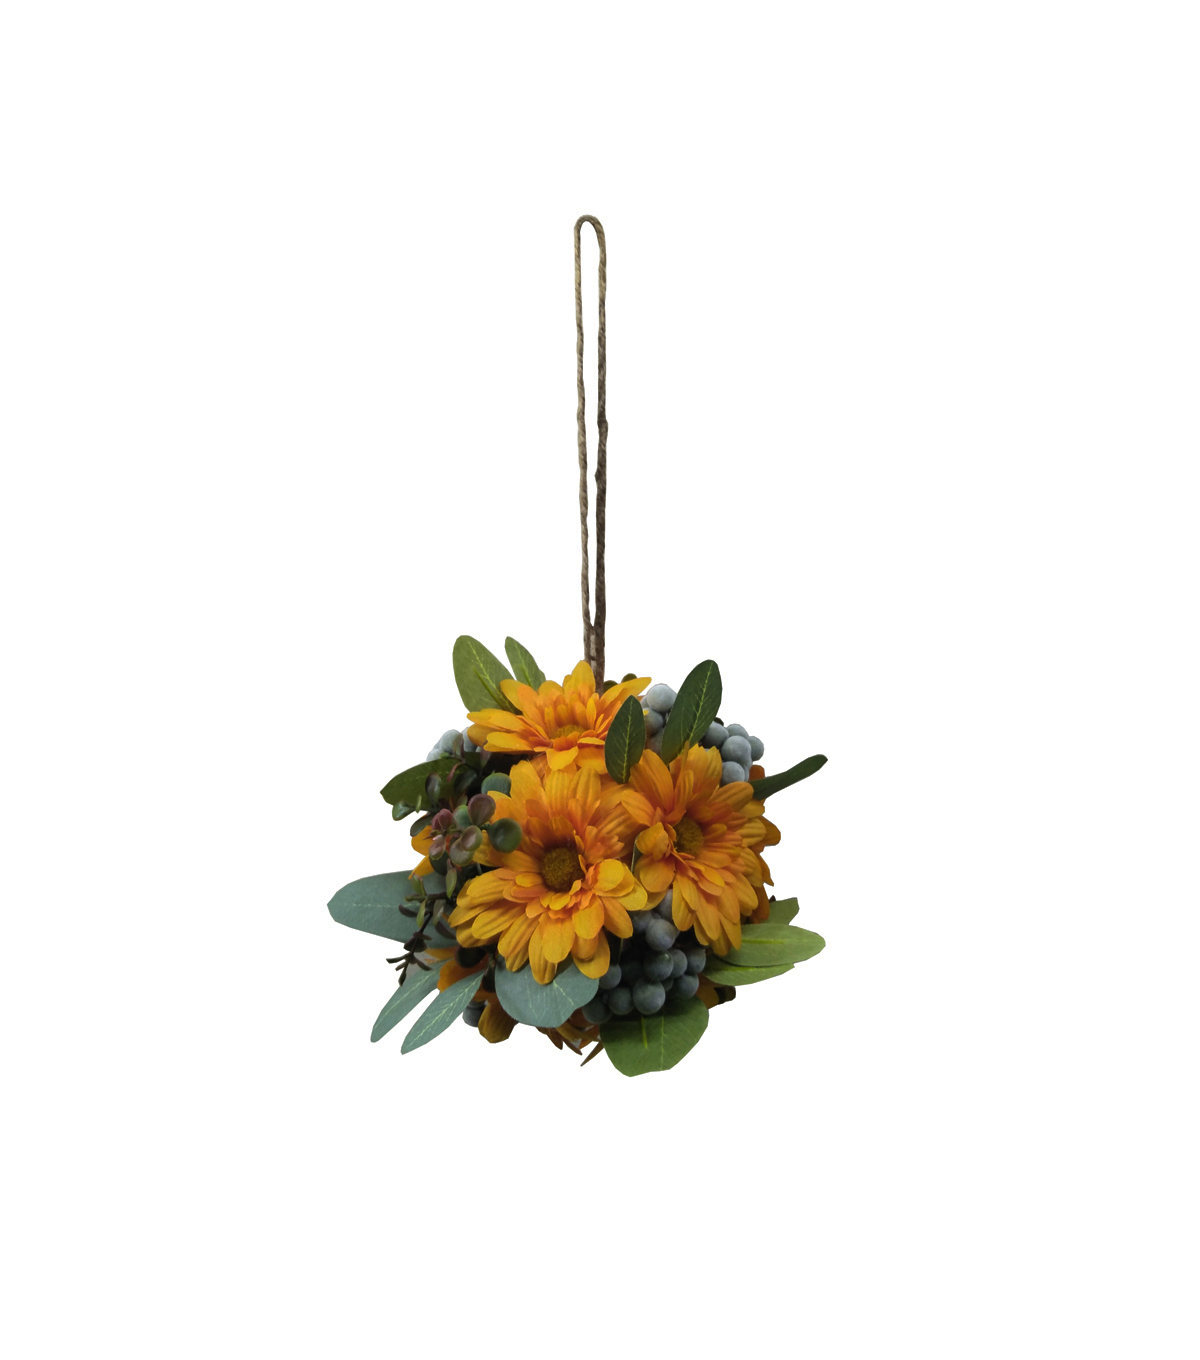 Blooming Autumn Small Daisy, Berry & Leaf Kissing Ball